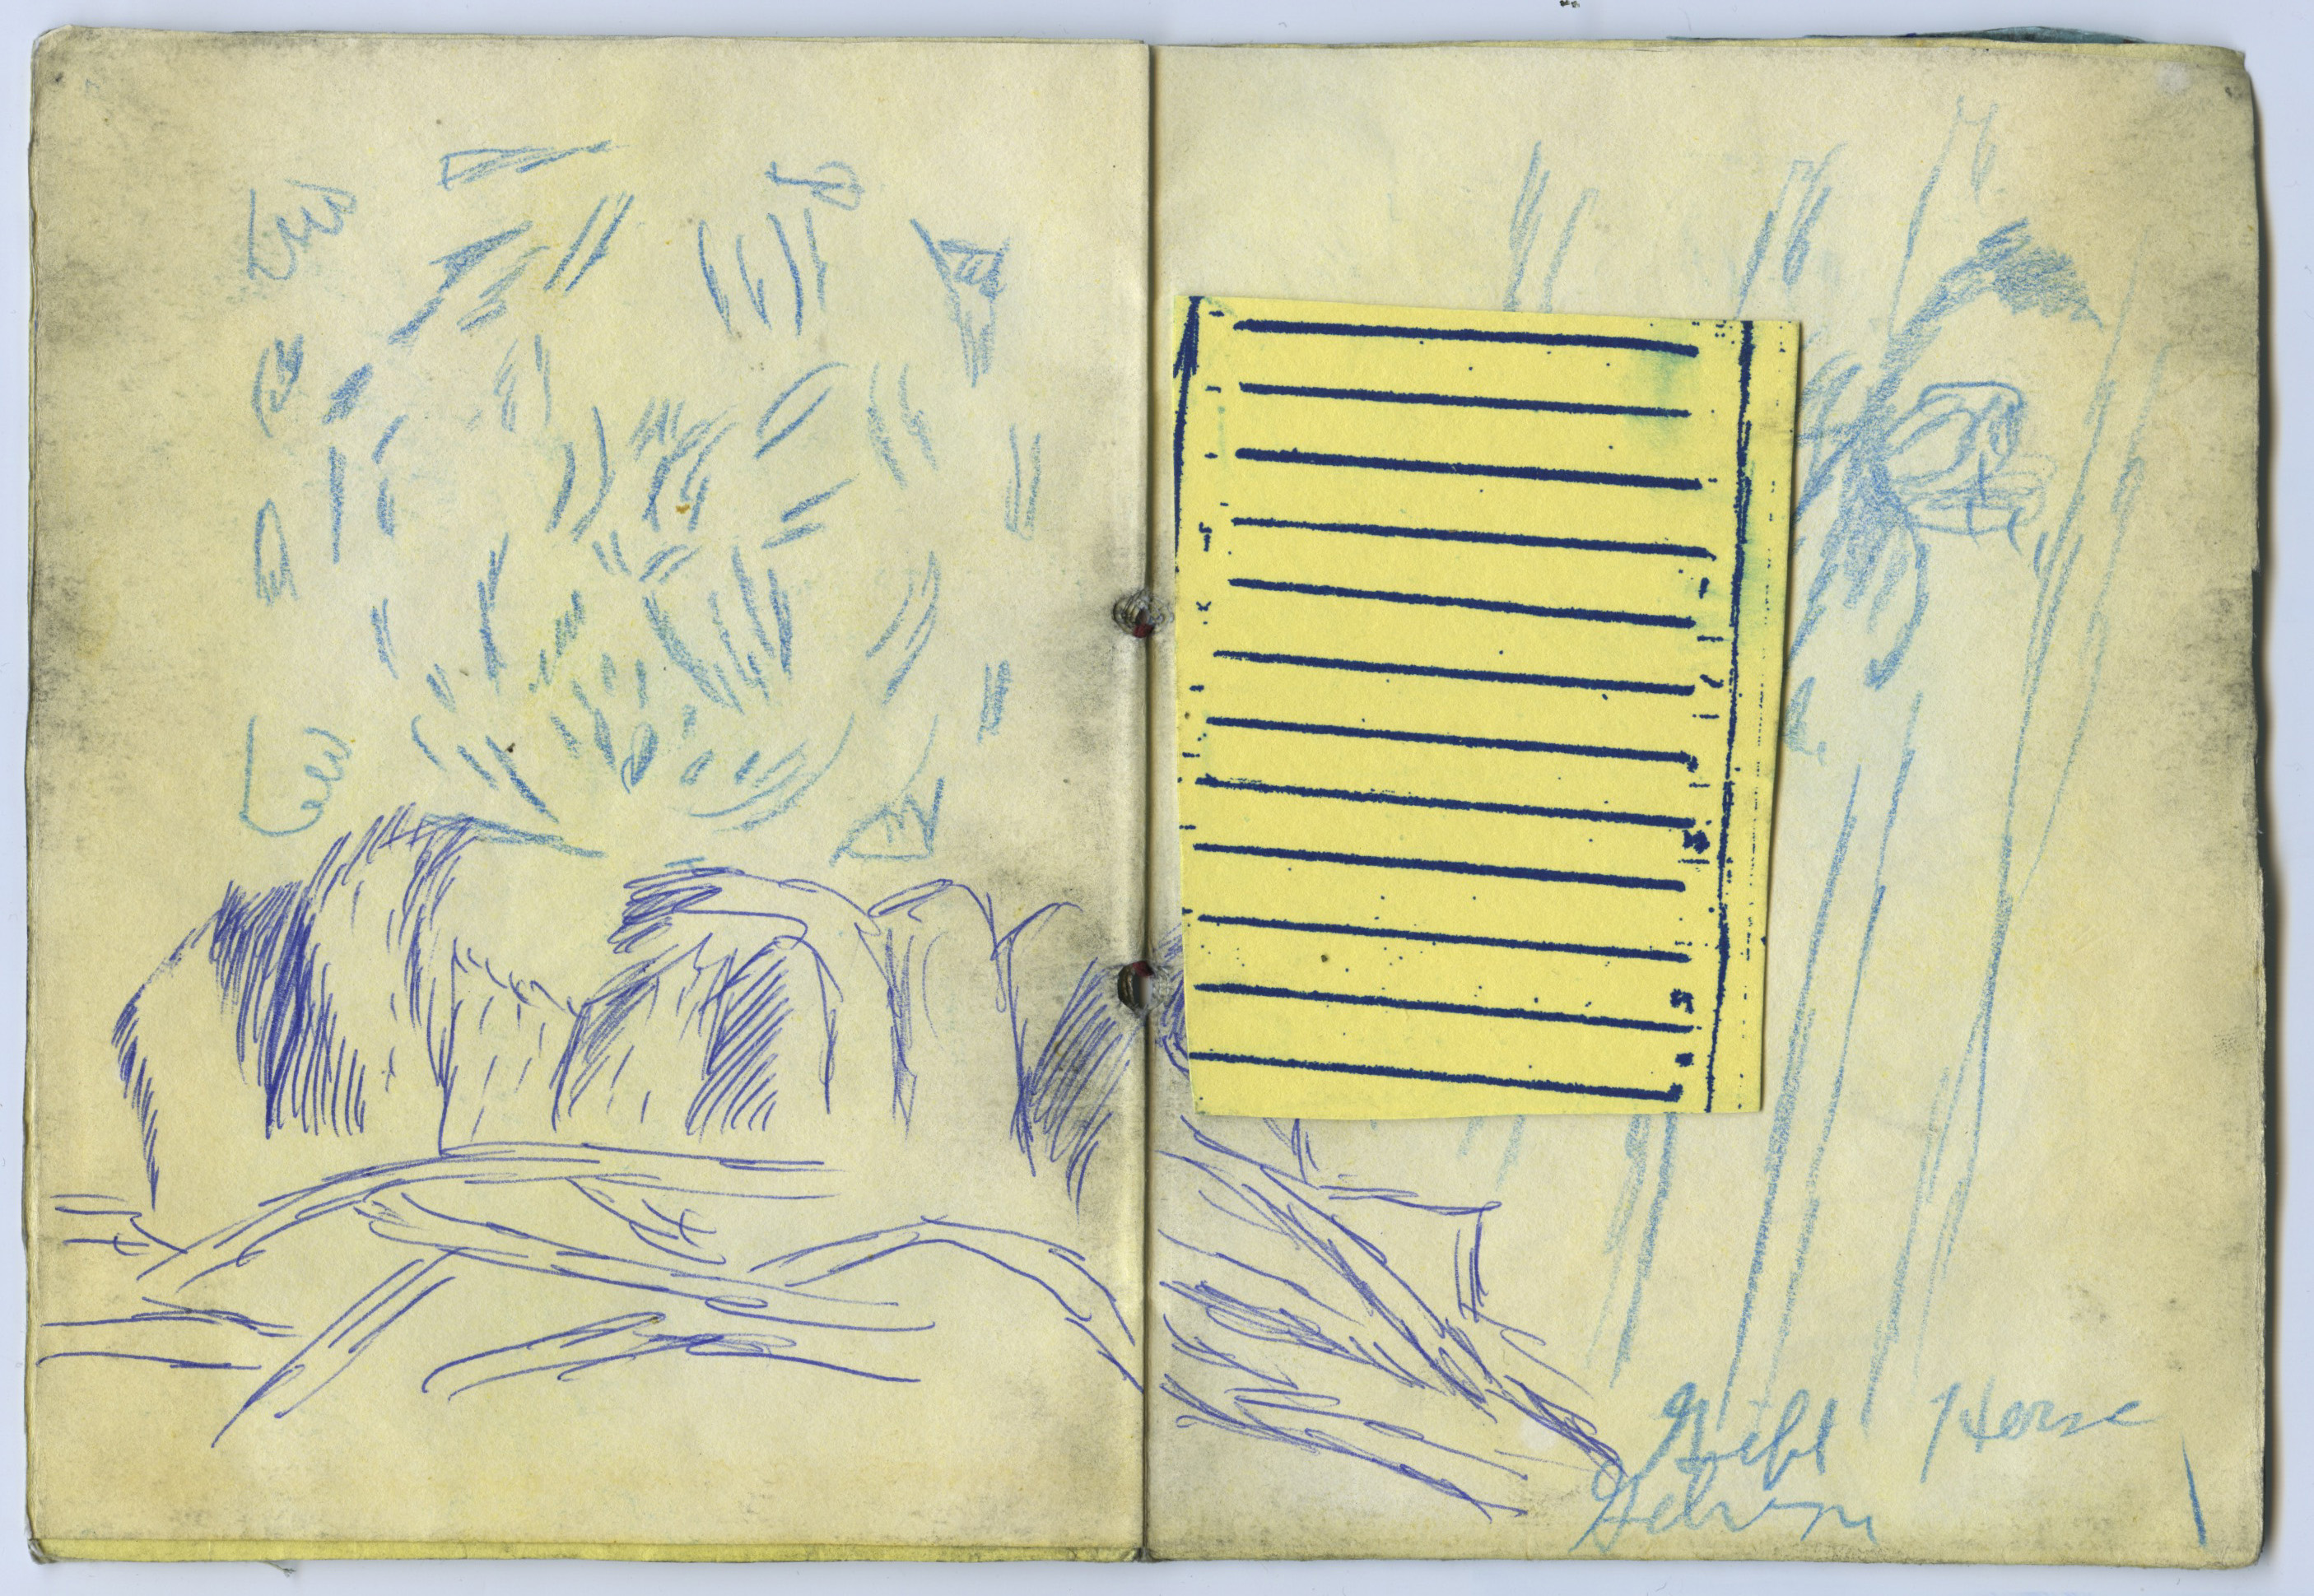 Sketchbook pages from the author's notebook. Abstract organic shapes in blue ballpoint pen, and a scrap of lined yellow paper.